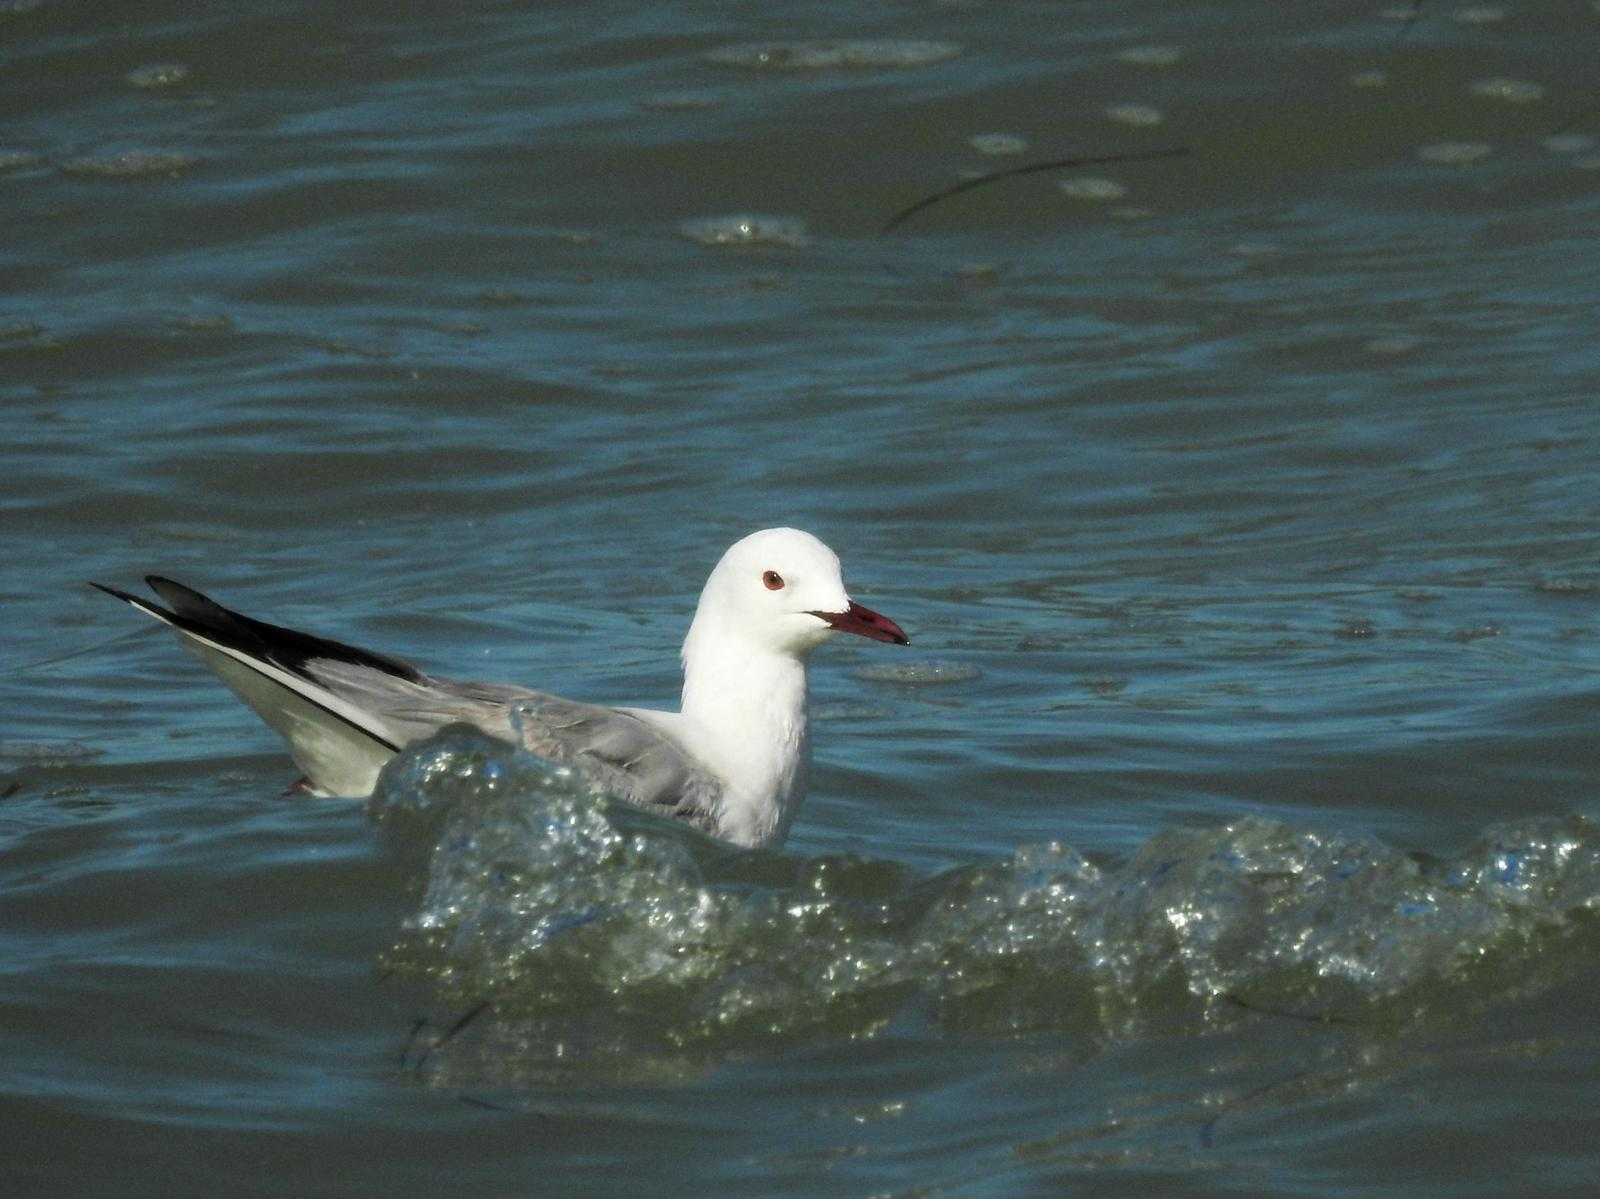 Slender-billed Gull Photo by African Googre